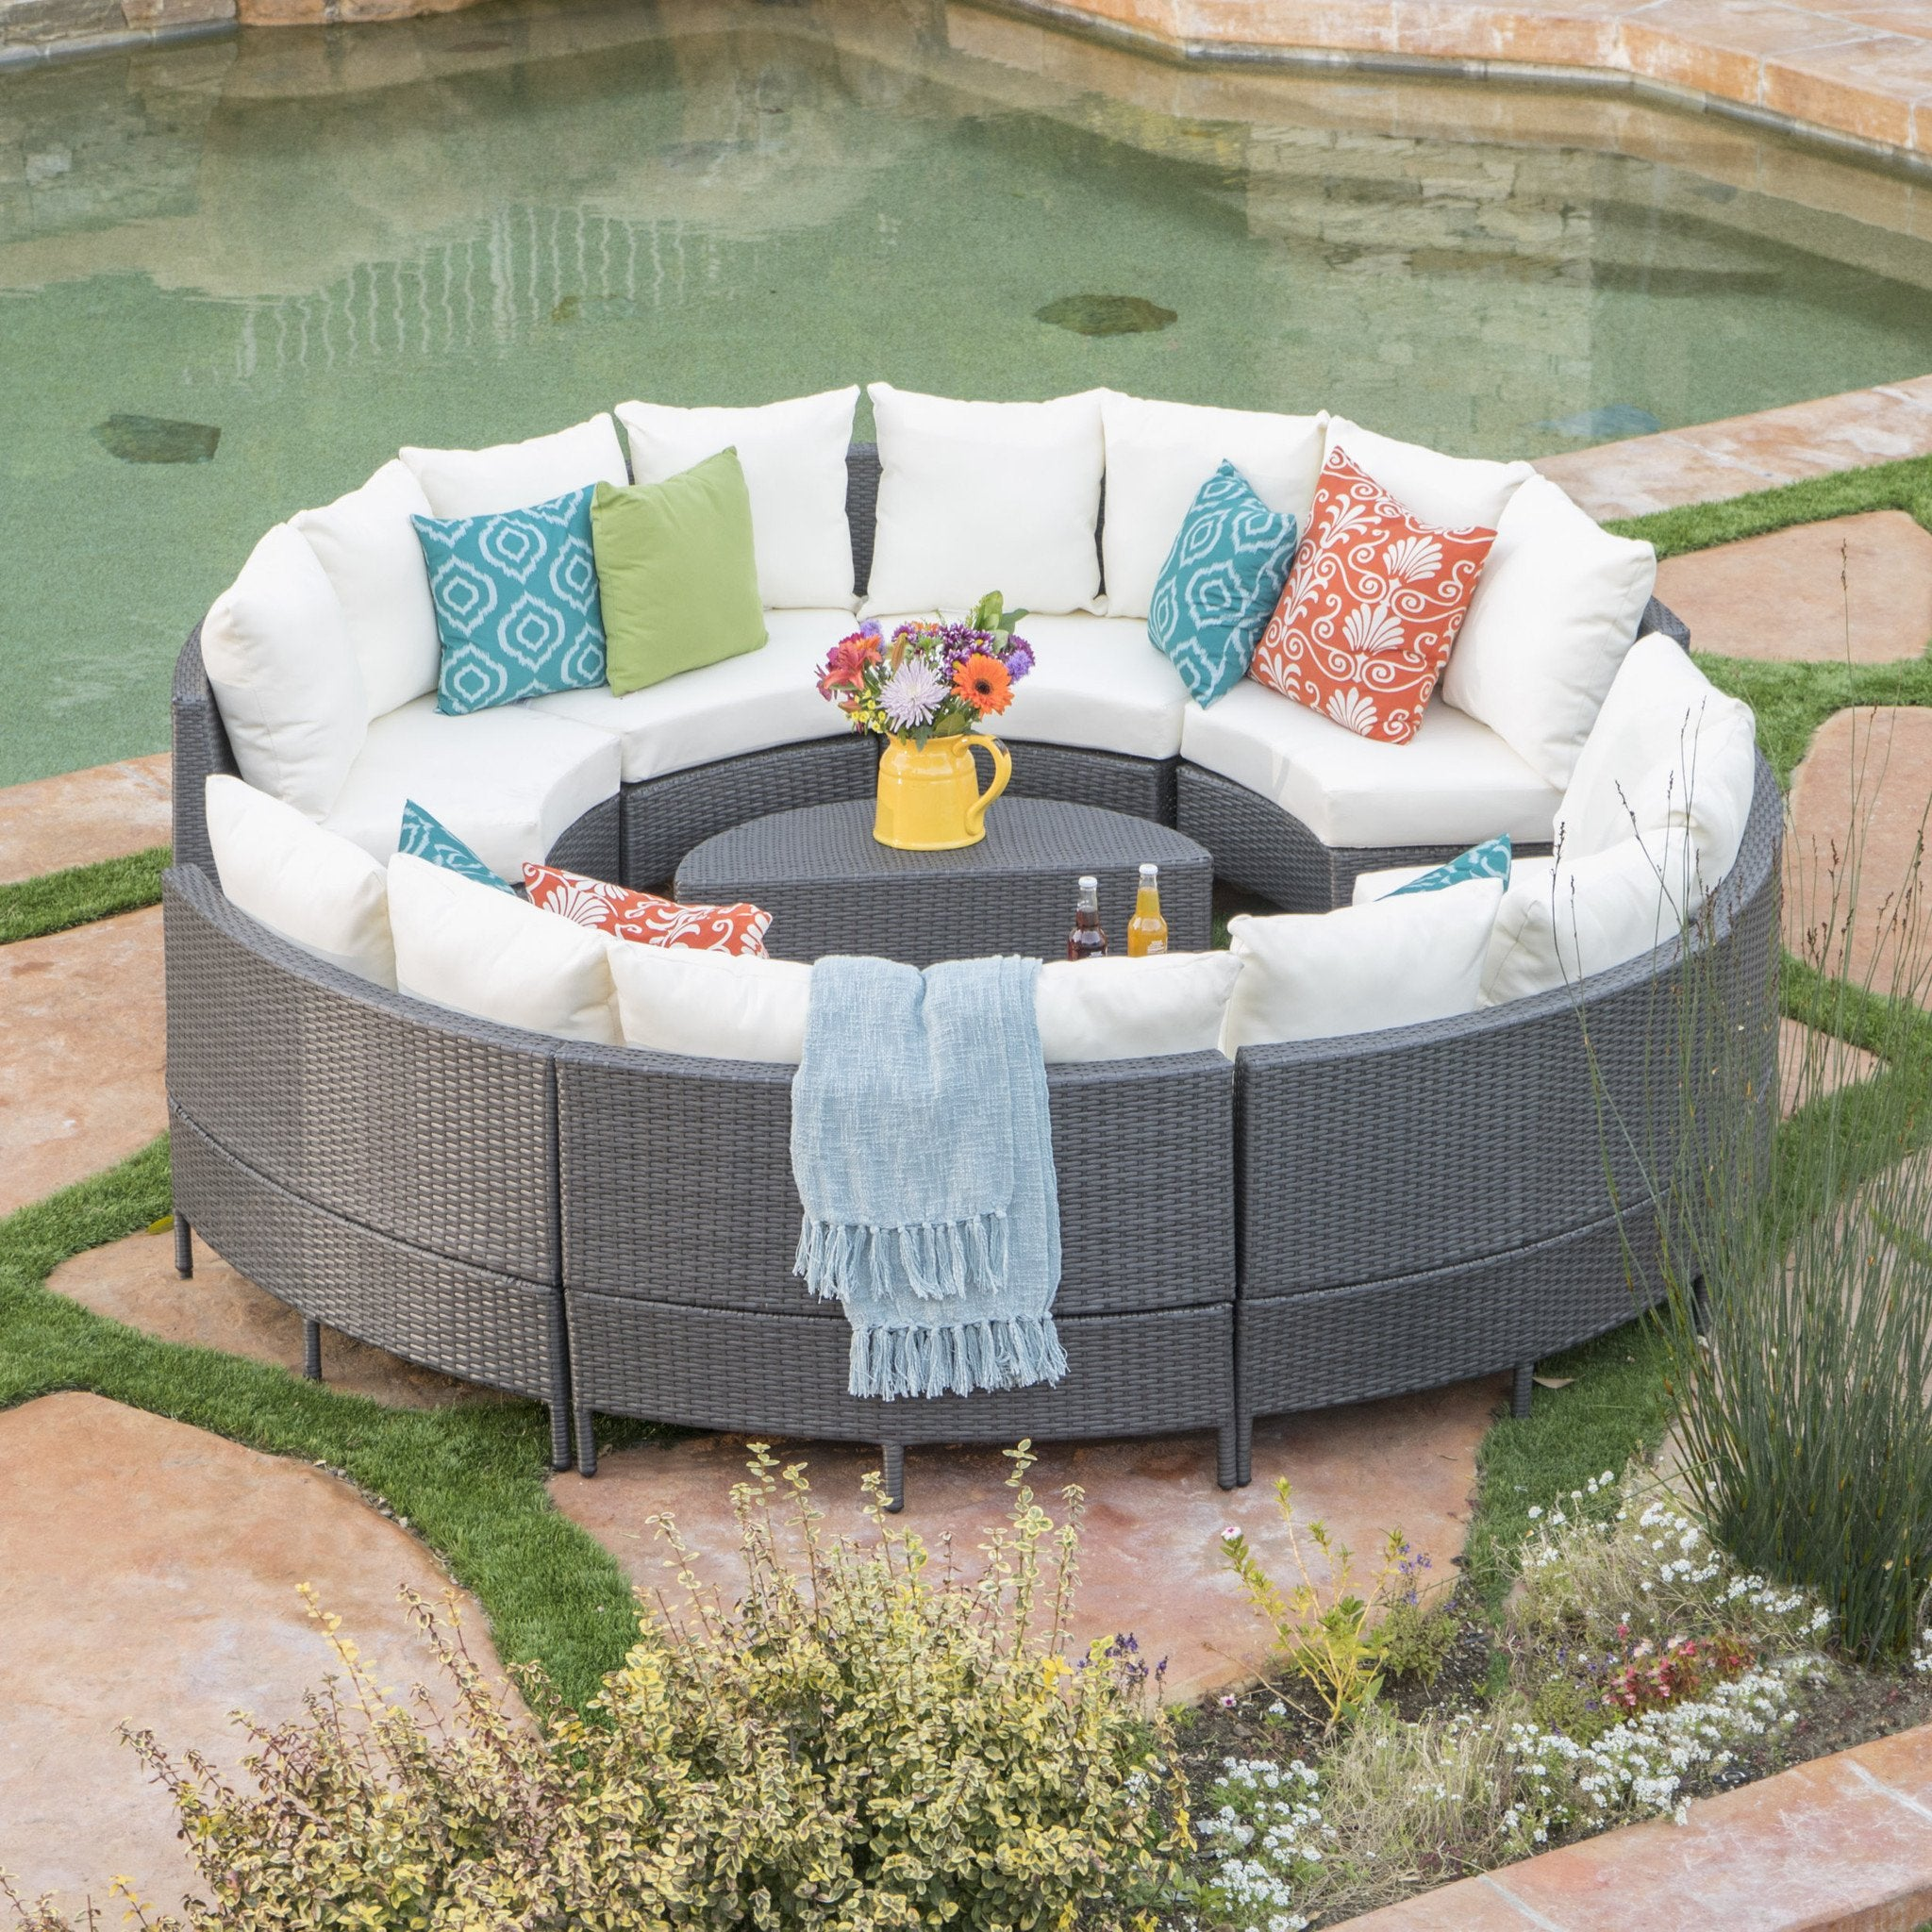 Neville Outdoor 8 Seater Wicker Sofa Set With Water Resistant Fabric Cushions